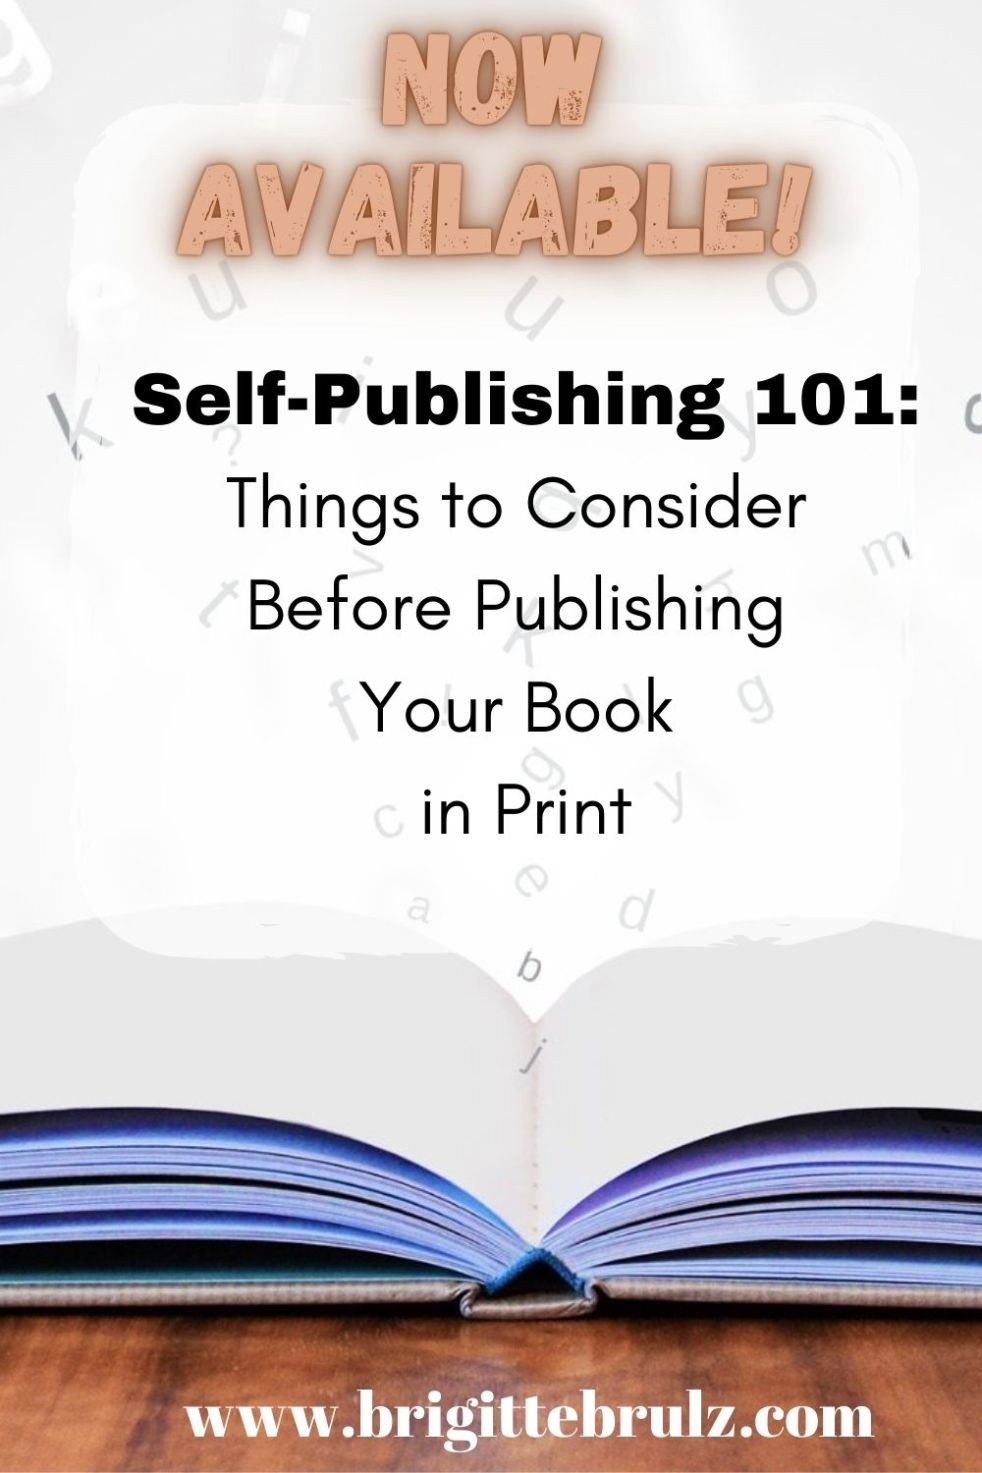 Self-Publishing 101_ Things to Consider Before Publishing Your Book in Print